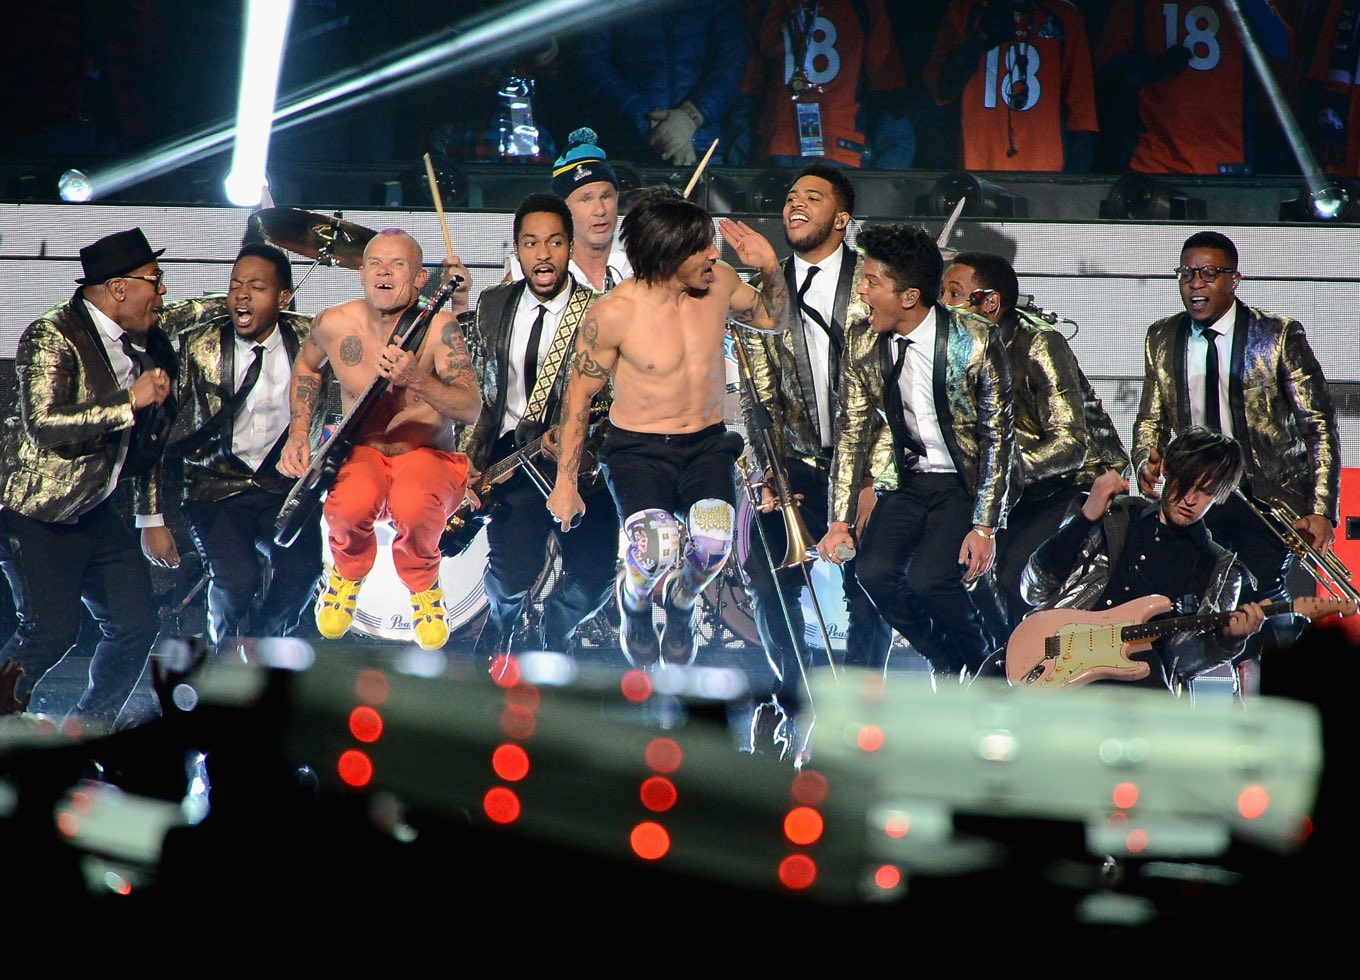 Flea, Chad Smith, Anthony Kiedis, Bruno Mars, and Josh Klinghoffer perform during the Pepsi Super Bowl XLVIII Halftime Show at MetLife Stadium on February 2, 2014 in East Rutherford, New Jersey. February 02, 2014 (Photo by: Theo Wargo/ Getty)